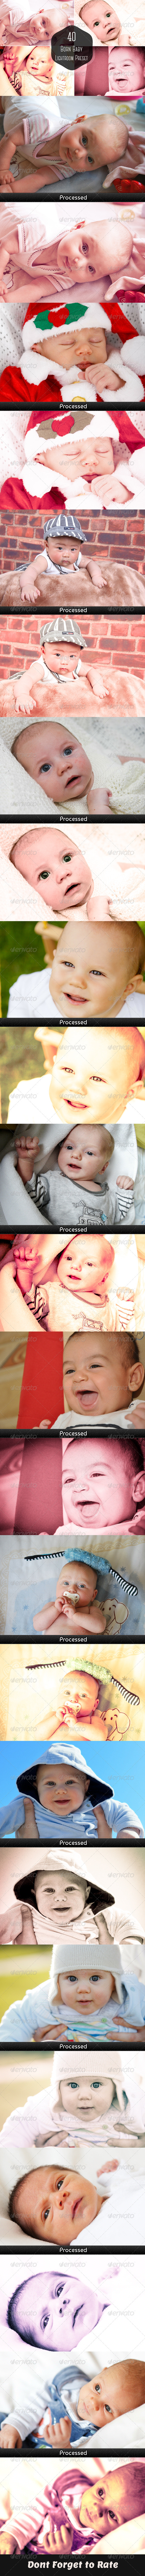 GraphicRiver 40 Born Baby Pro Lightroom 4 and 5 Presets 8205508